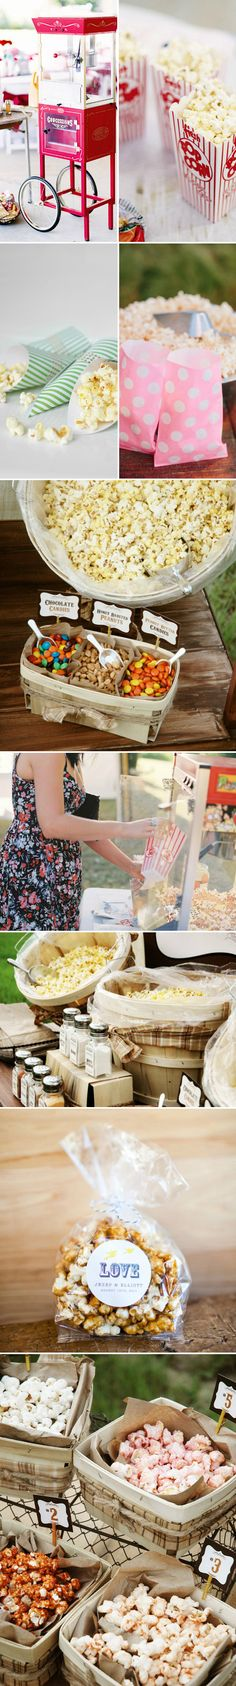 Popcorn Bar, Wedding Ideas ONLY IF I HAD THE MACHINE TO POP IT HOT AND FRESH!